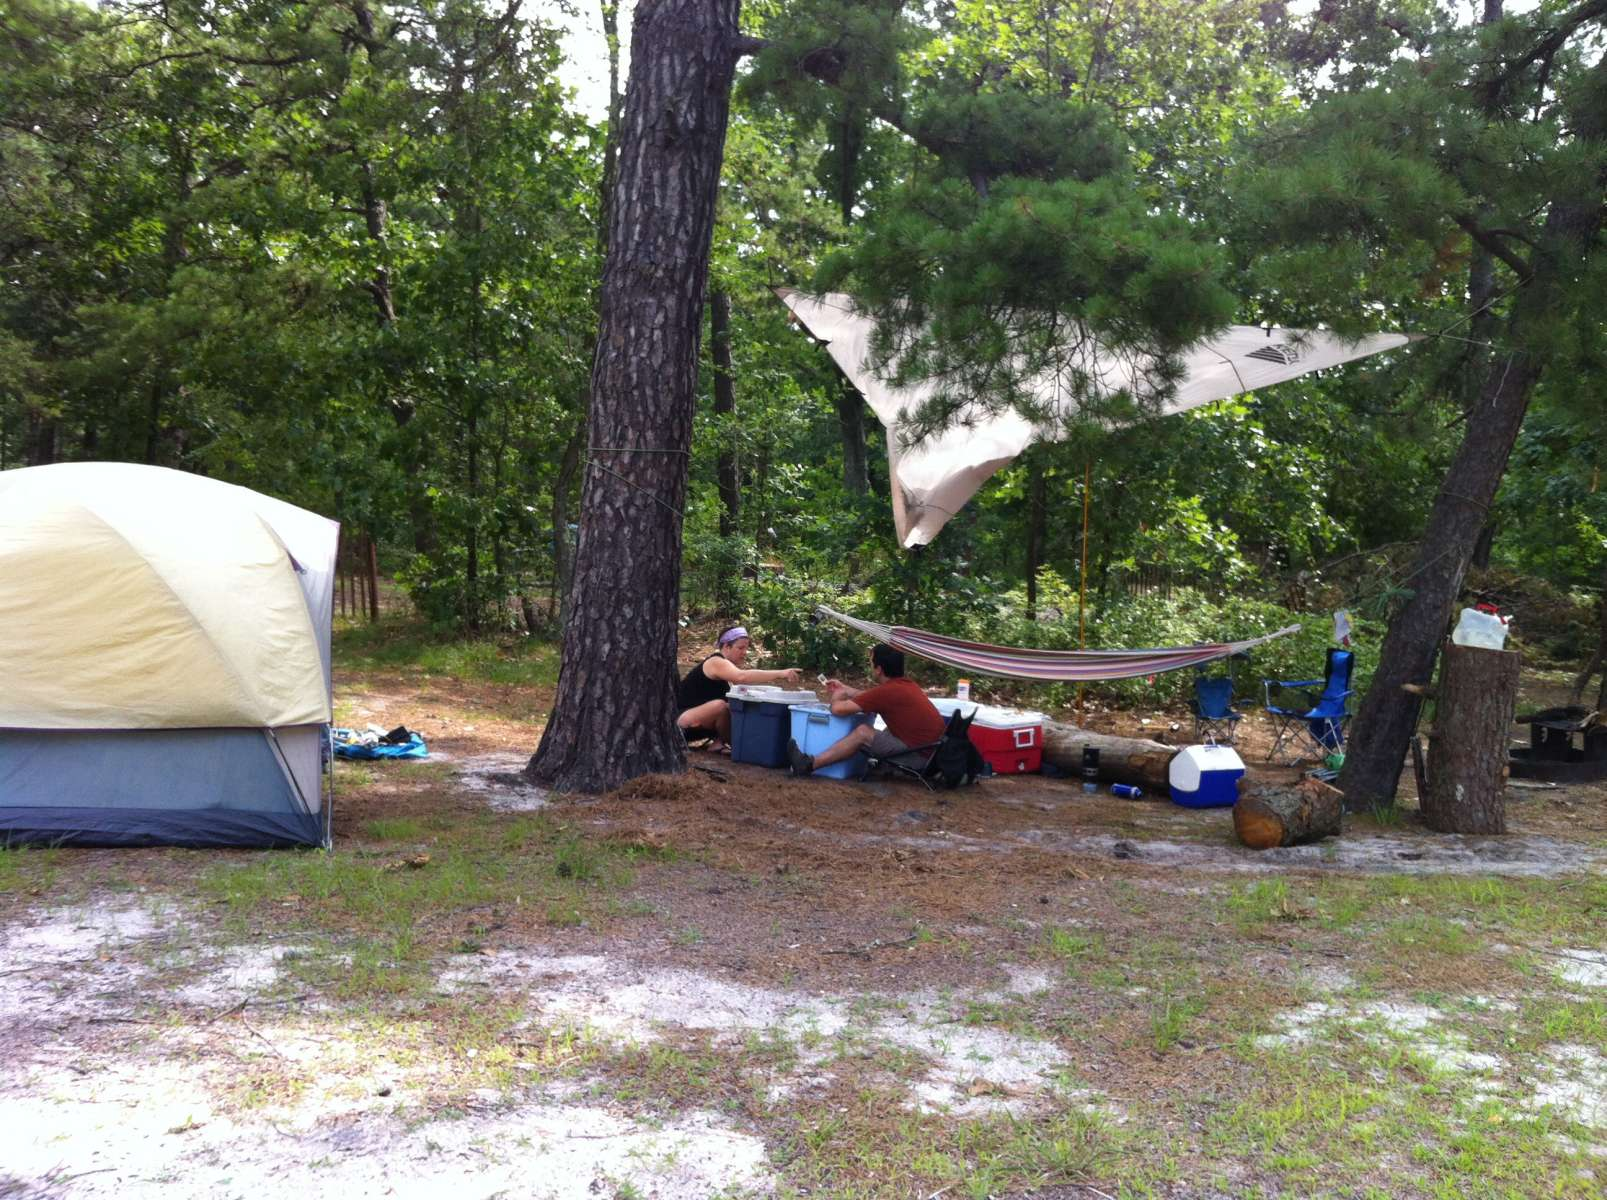 Goshen pond camping area wharton nj 3 hipcamper reviews for Wharton state forest cabins